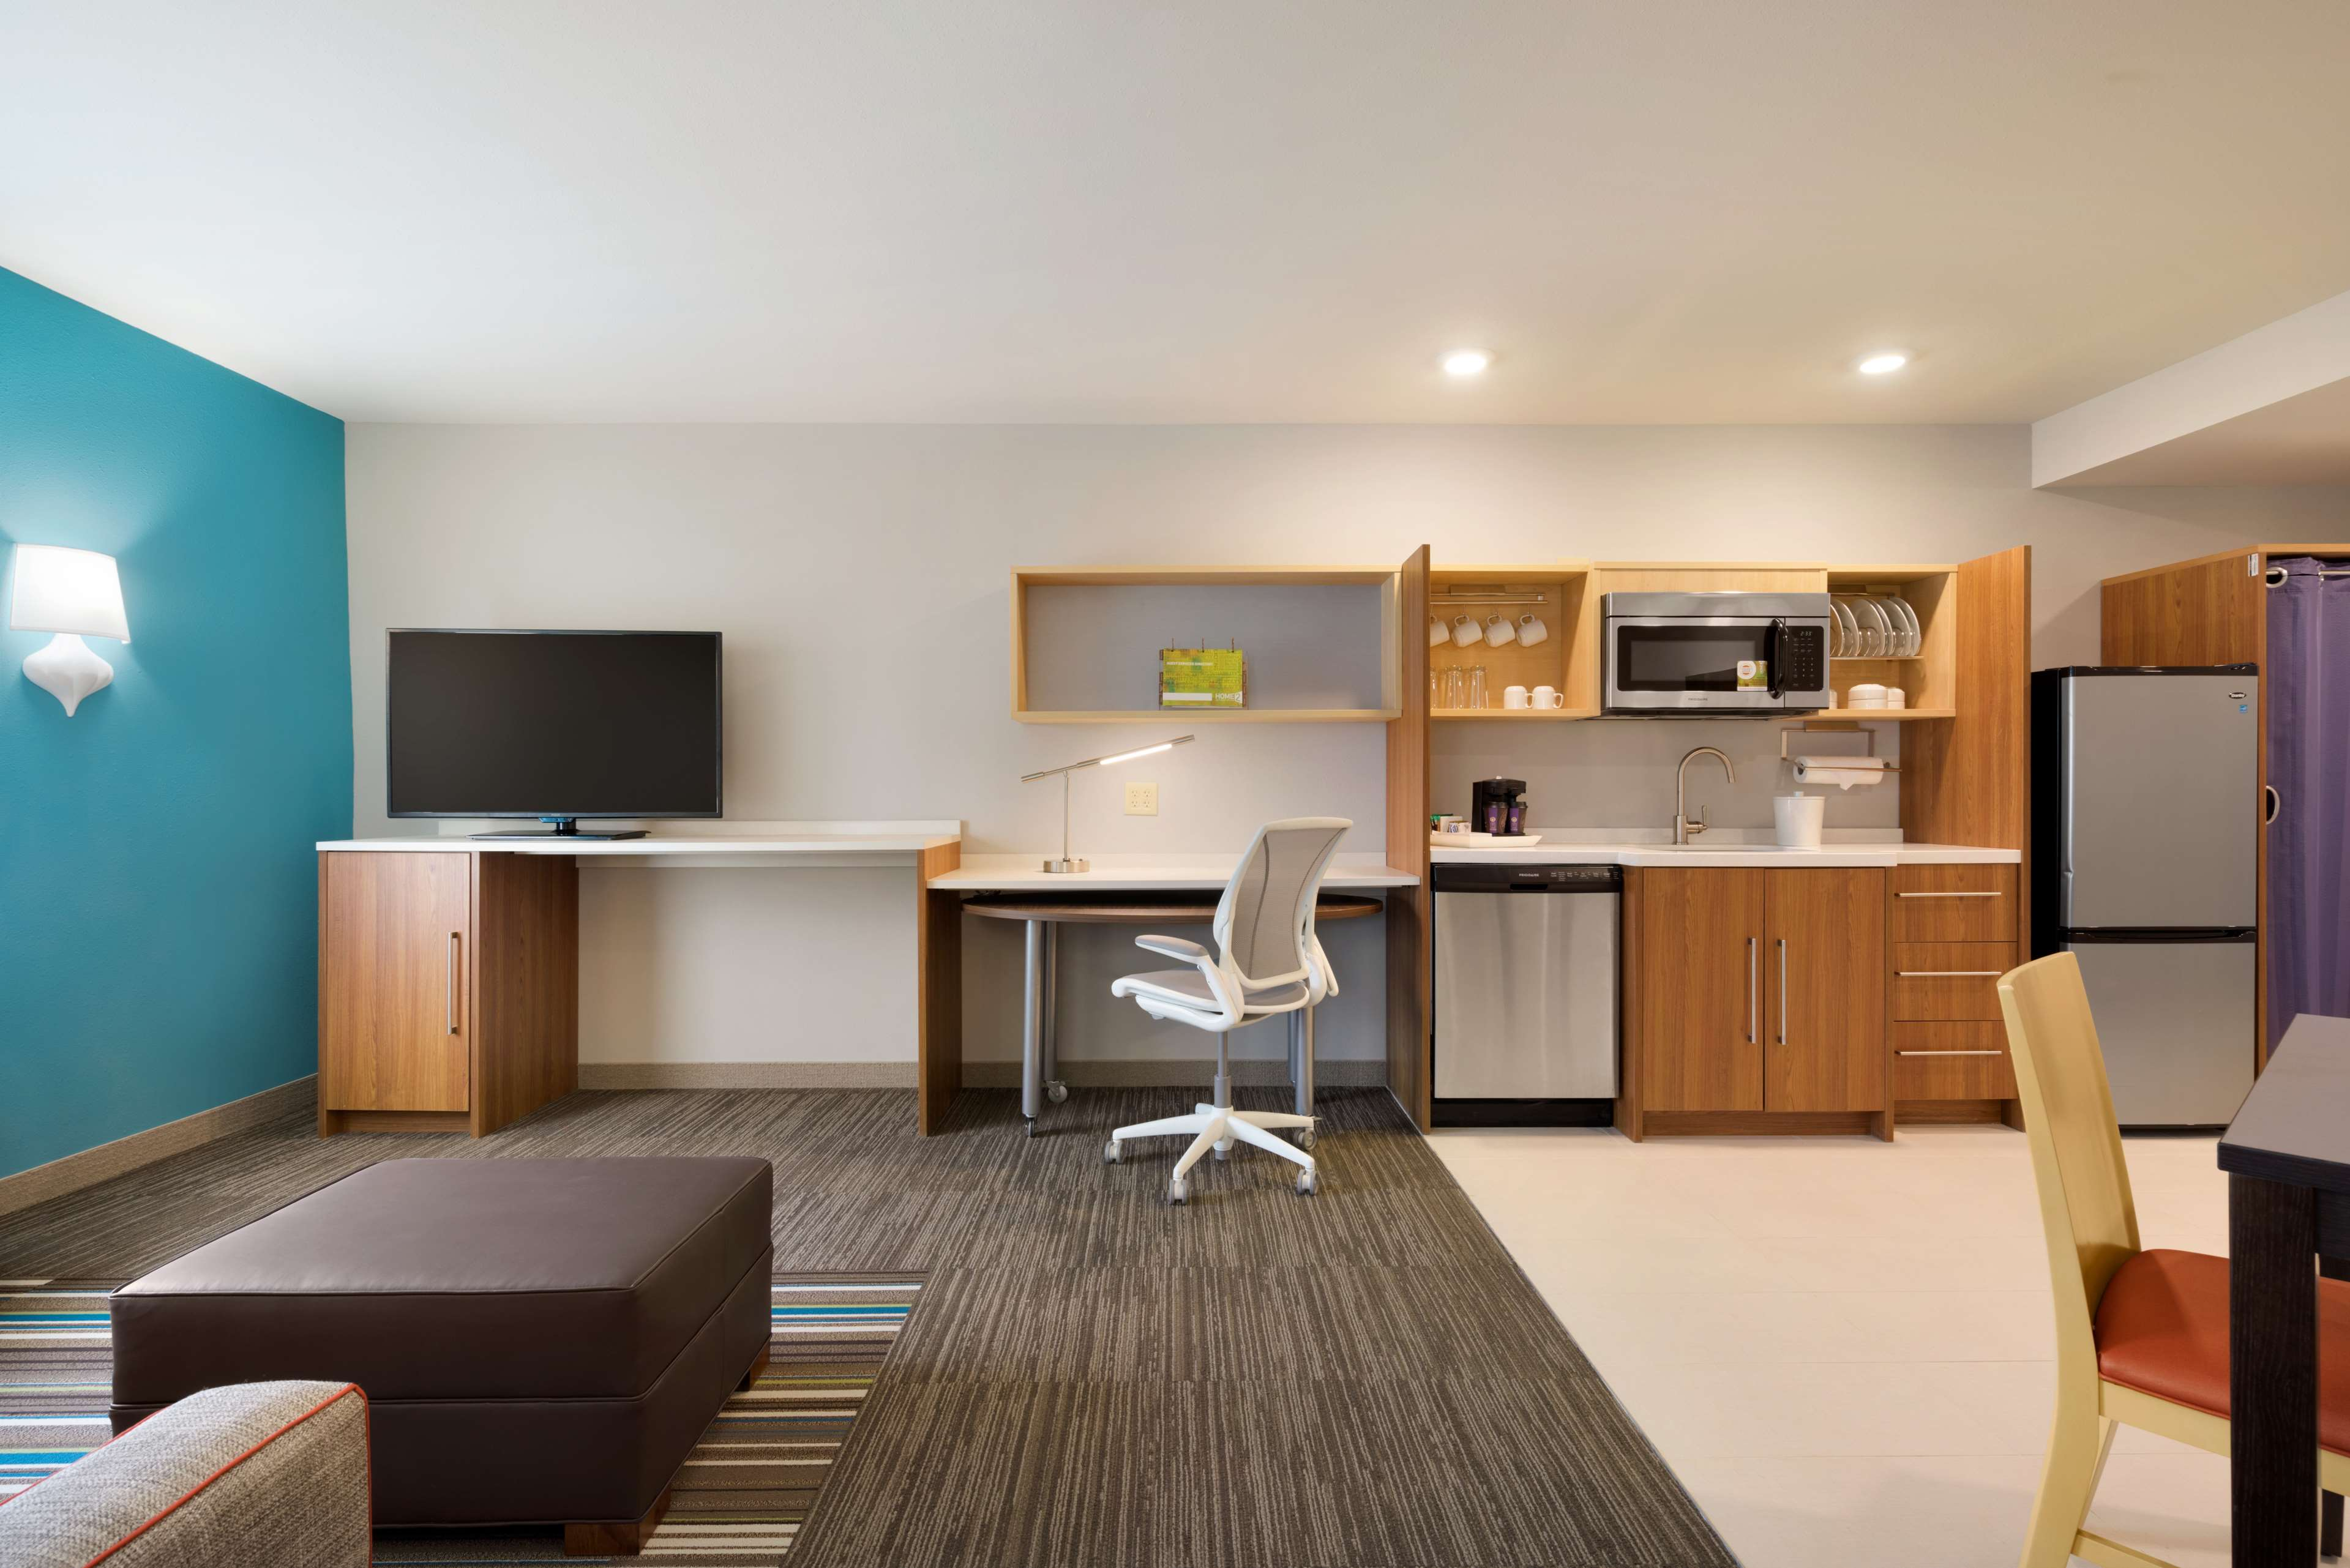 Home2 Suites by Hilton Roanoke image 33